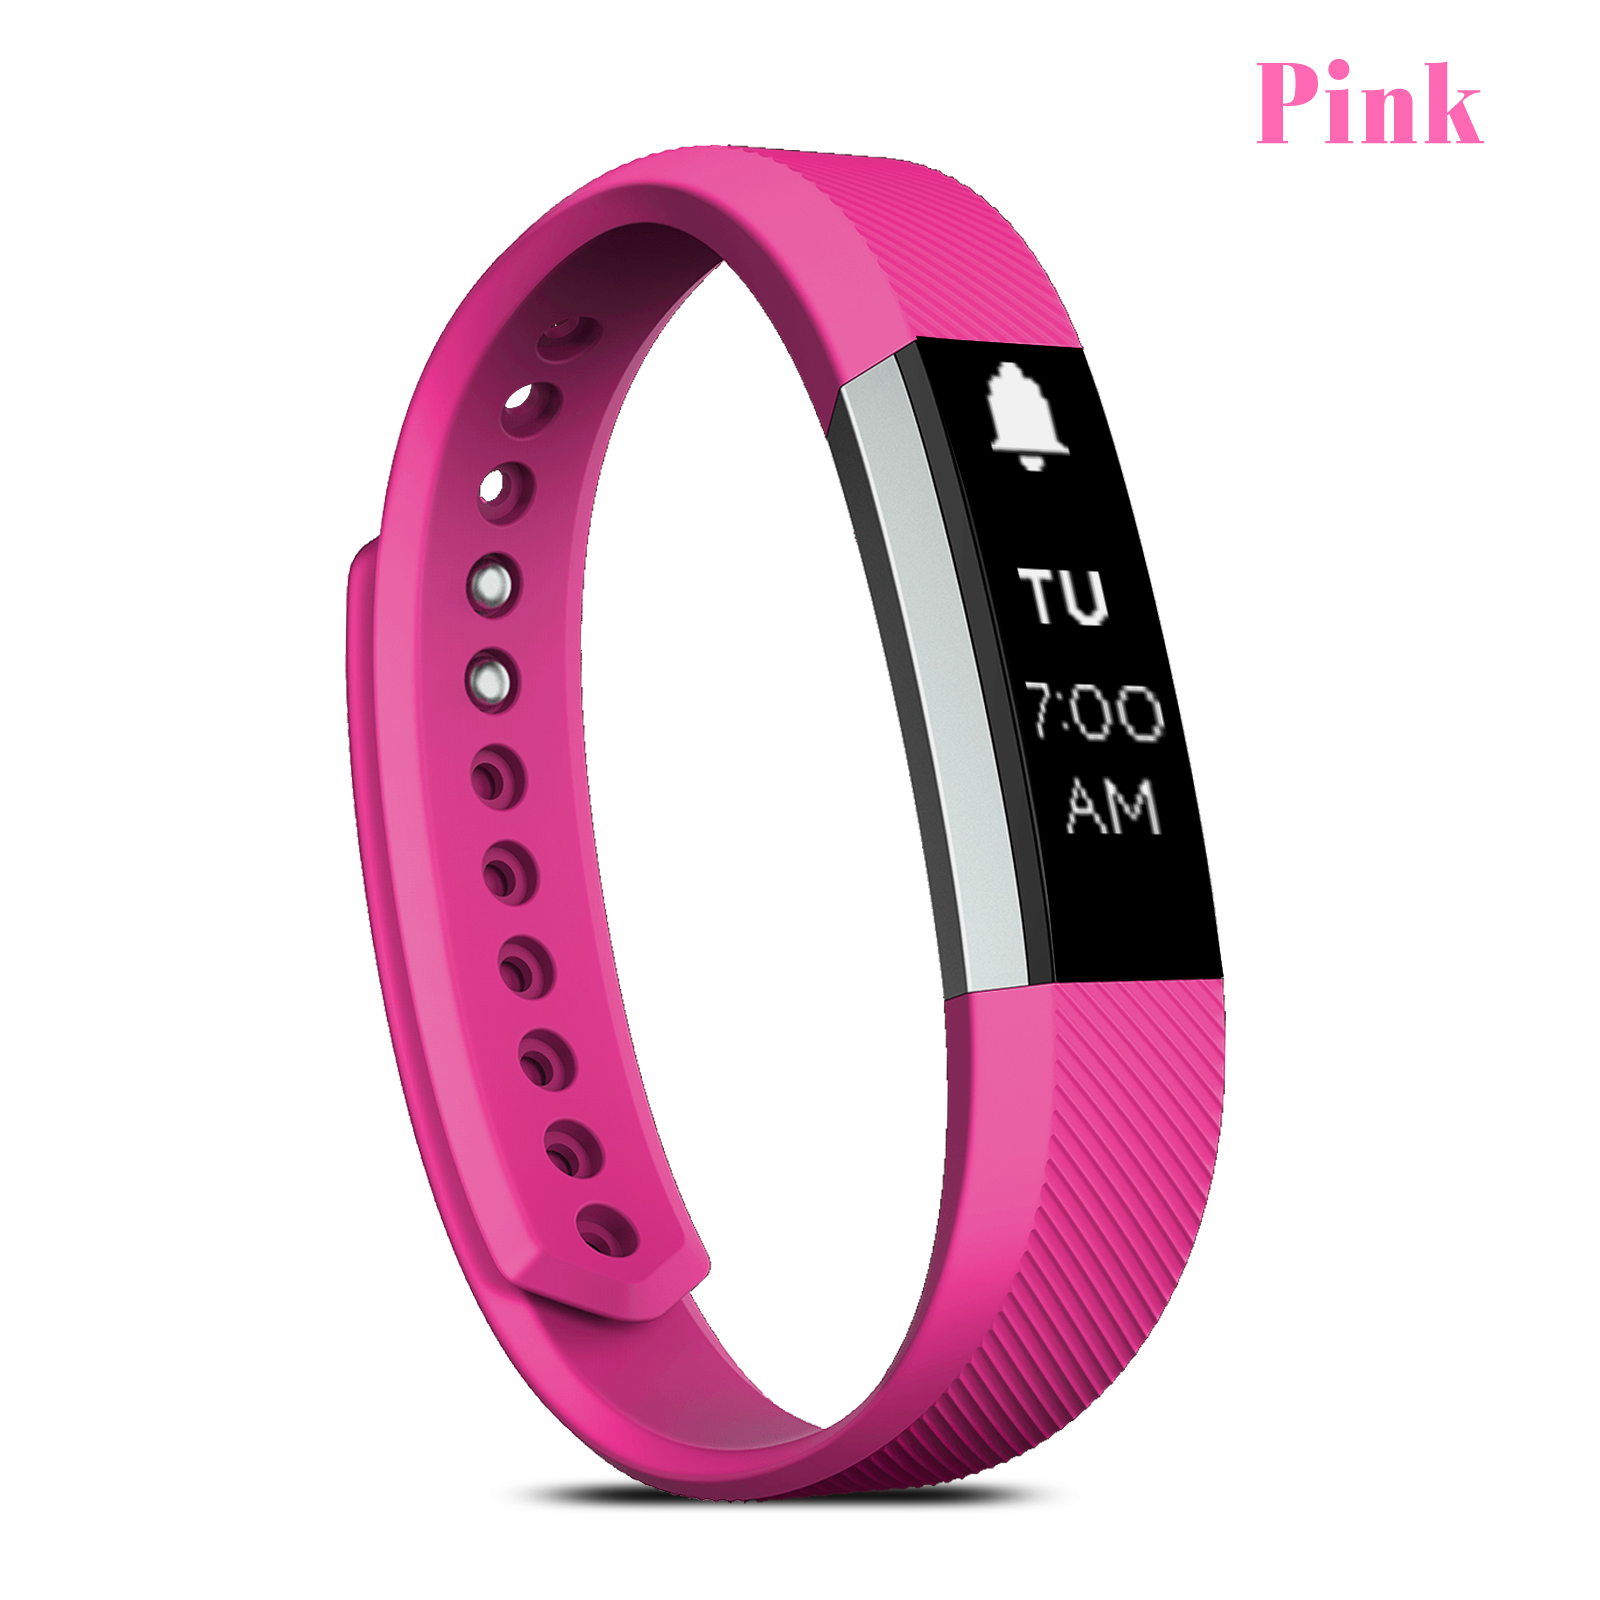 Details about Small/ Large Size Replacement Wristband Band Strap For Fitbit  Alta HR Wristband